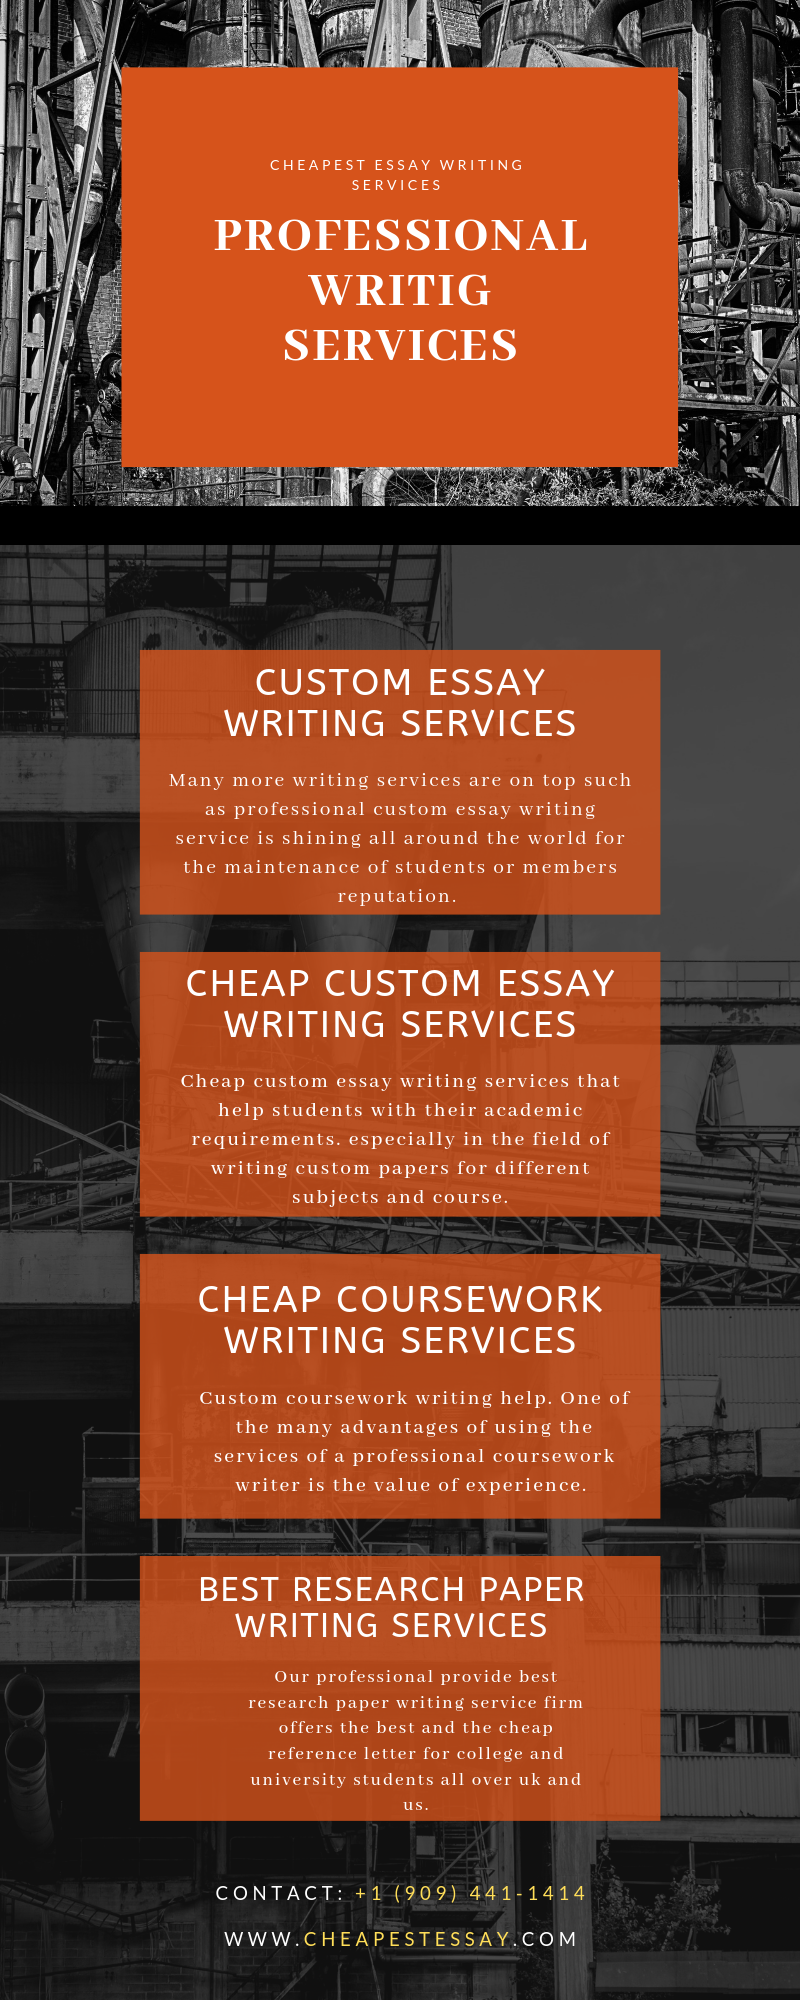 Professional writing services from experts with knowledge